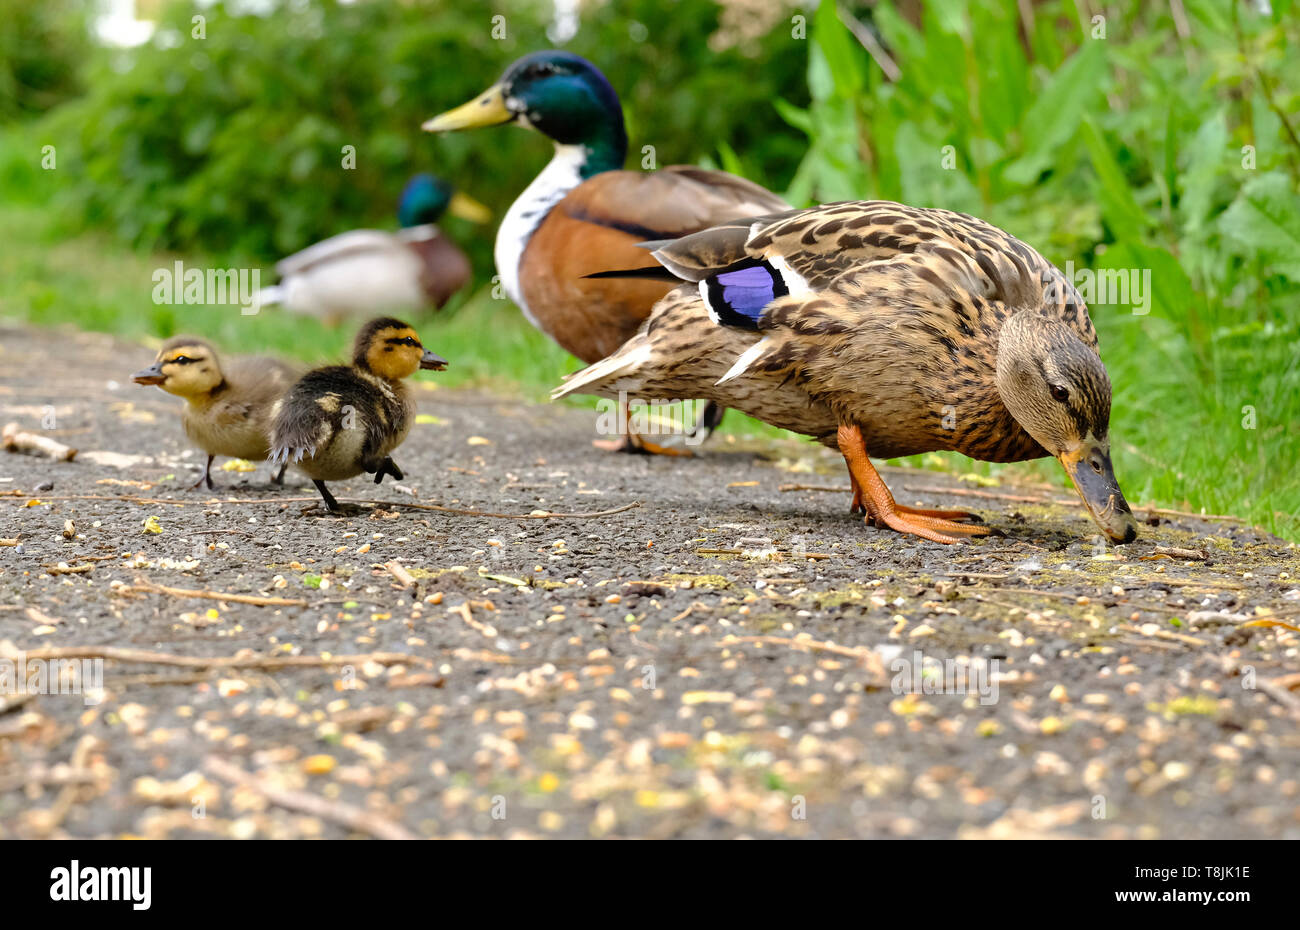 Mallard Duck parents foraging for food with their two Ducklings in an English garden - Stock Image